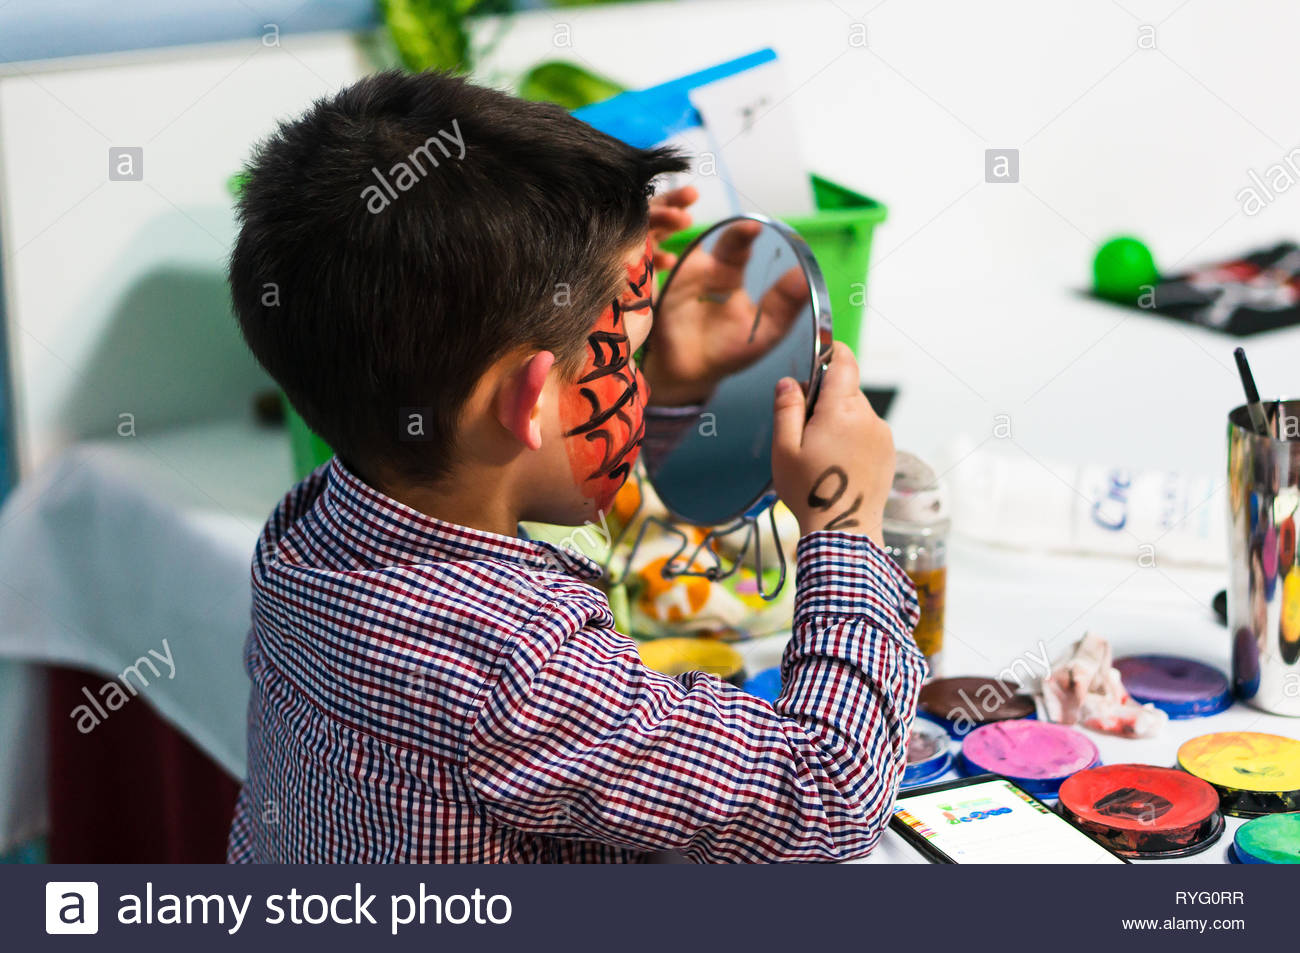 Poznan, Poland - March 2, 2019: Young boy watching his red painted face in a mirror during a birthday celebration party. Stock Photo